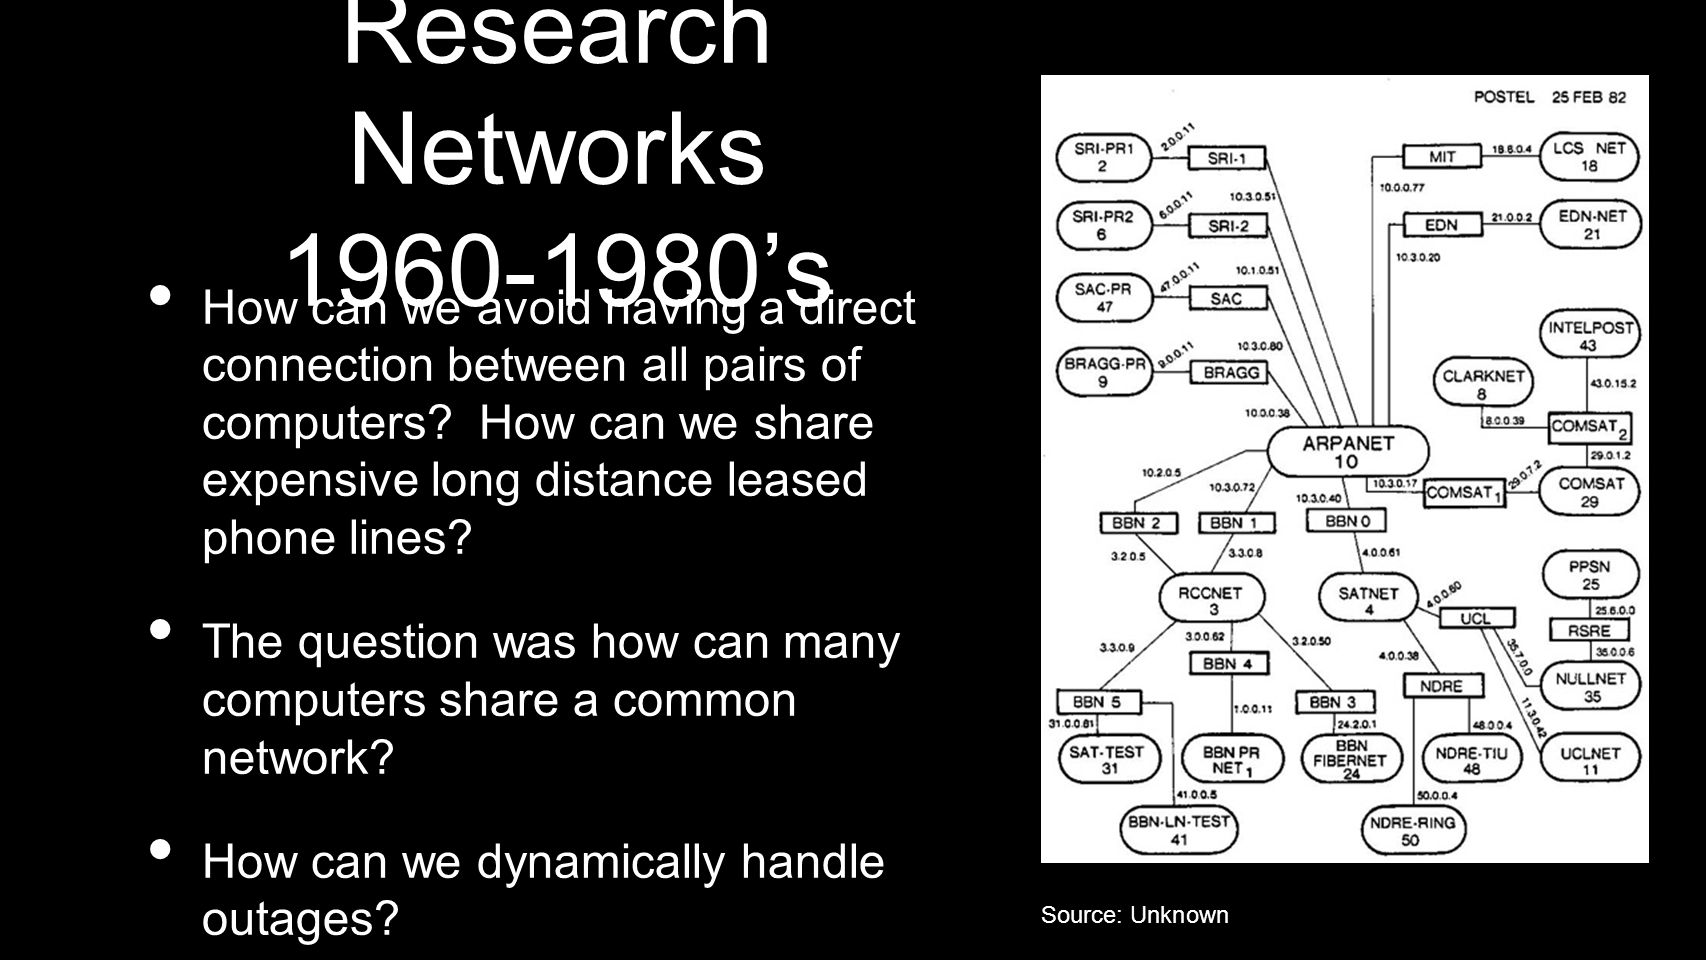 Research Networks 1960-1980's